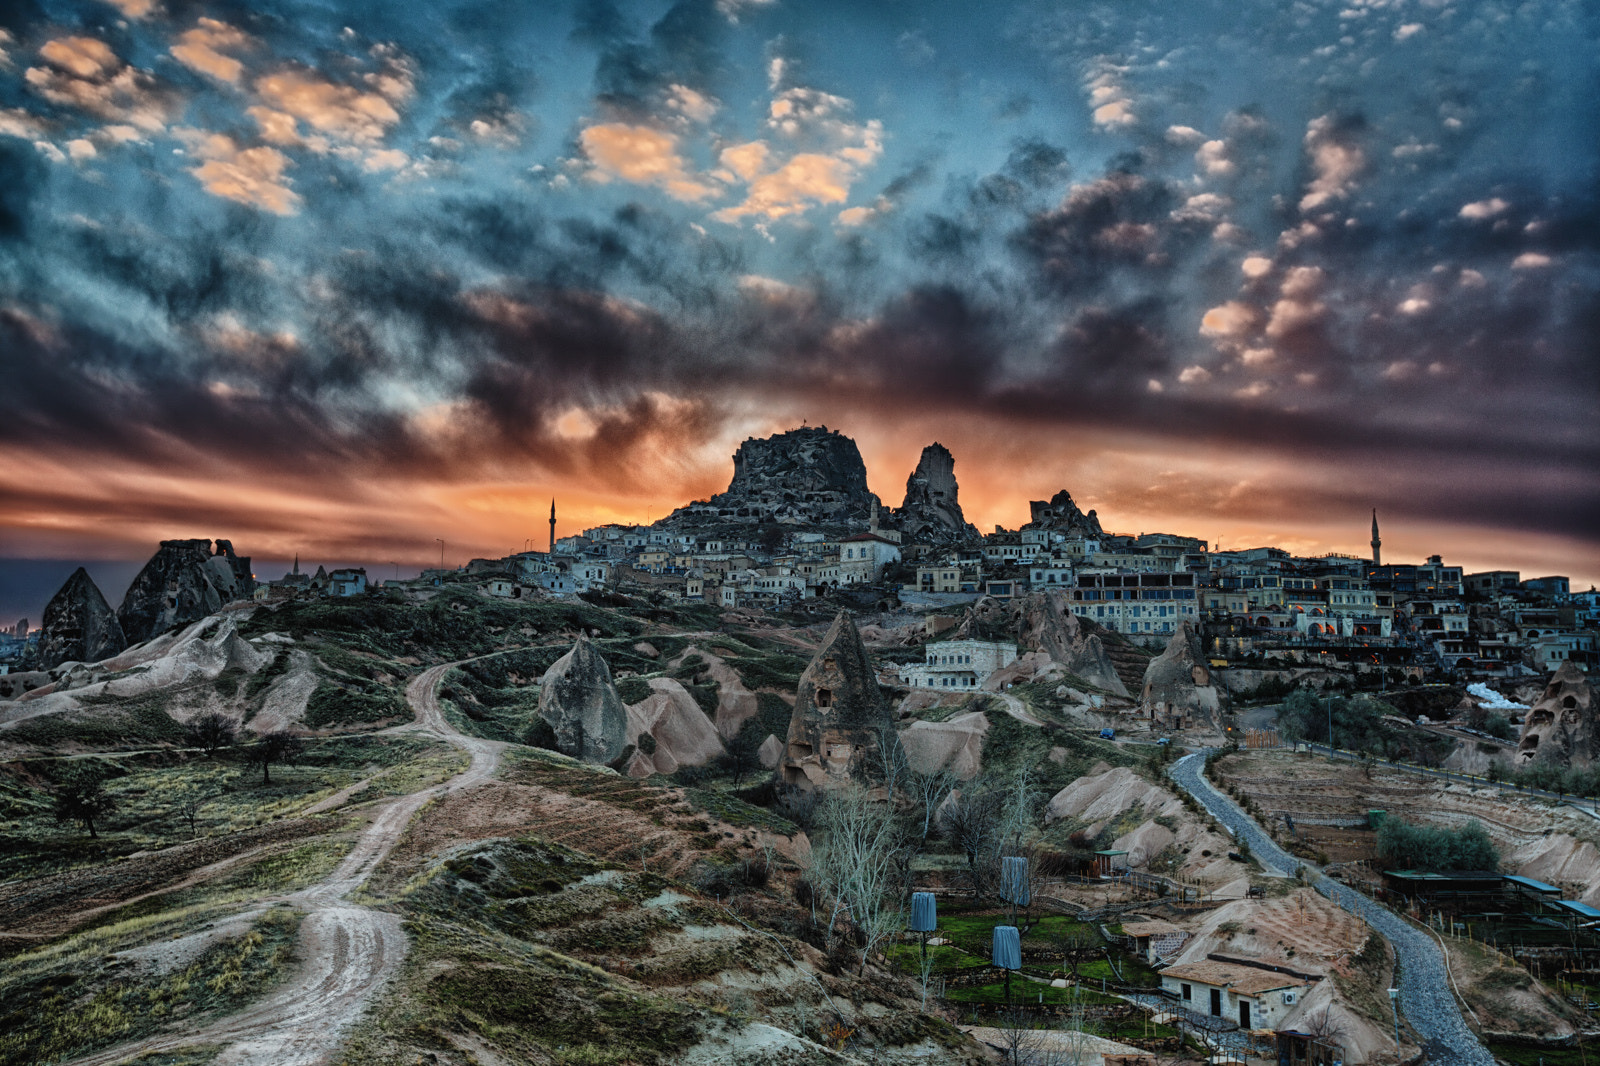 Photograph Uchisar Early Sunset by Marty Taylor on 500px